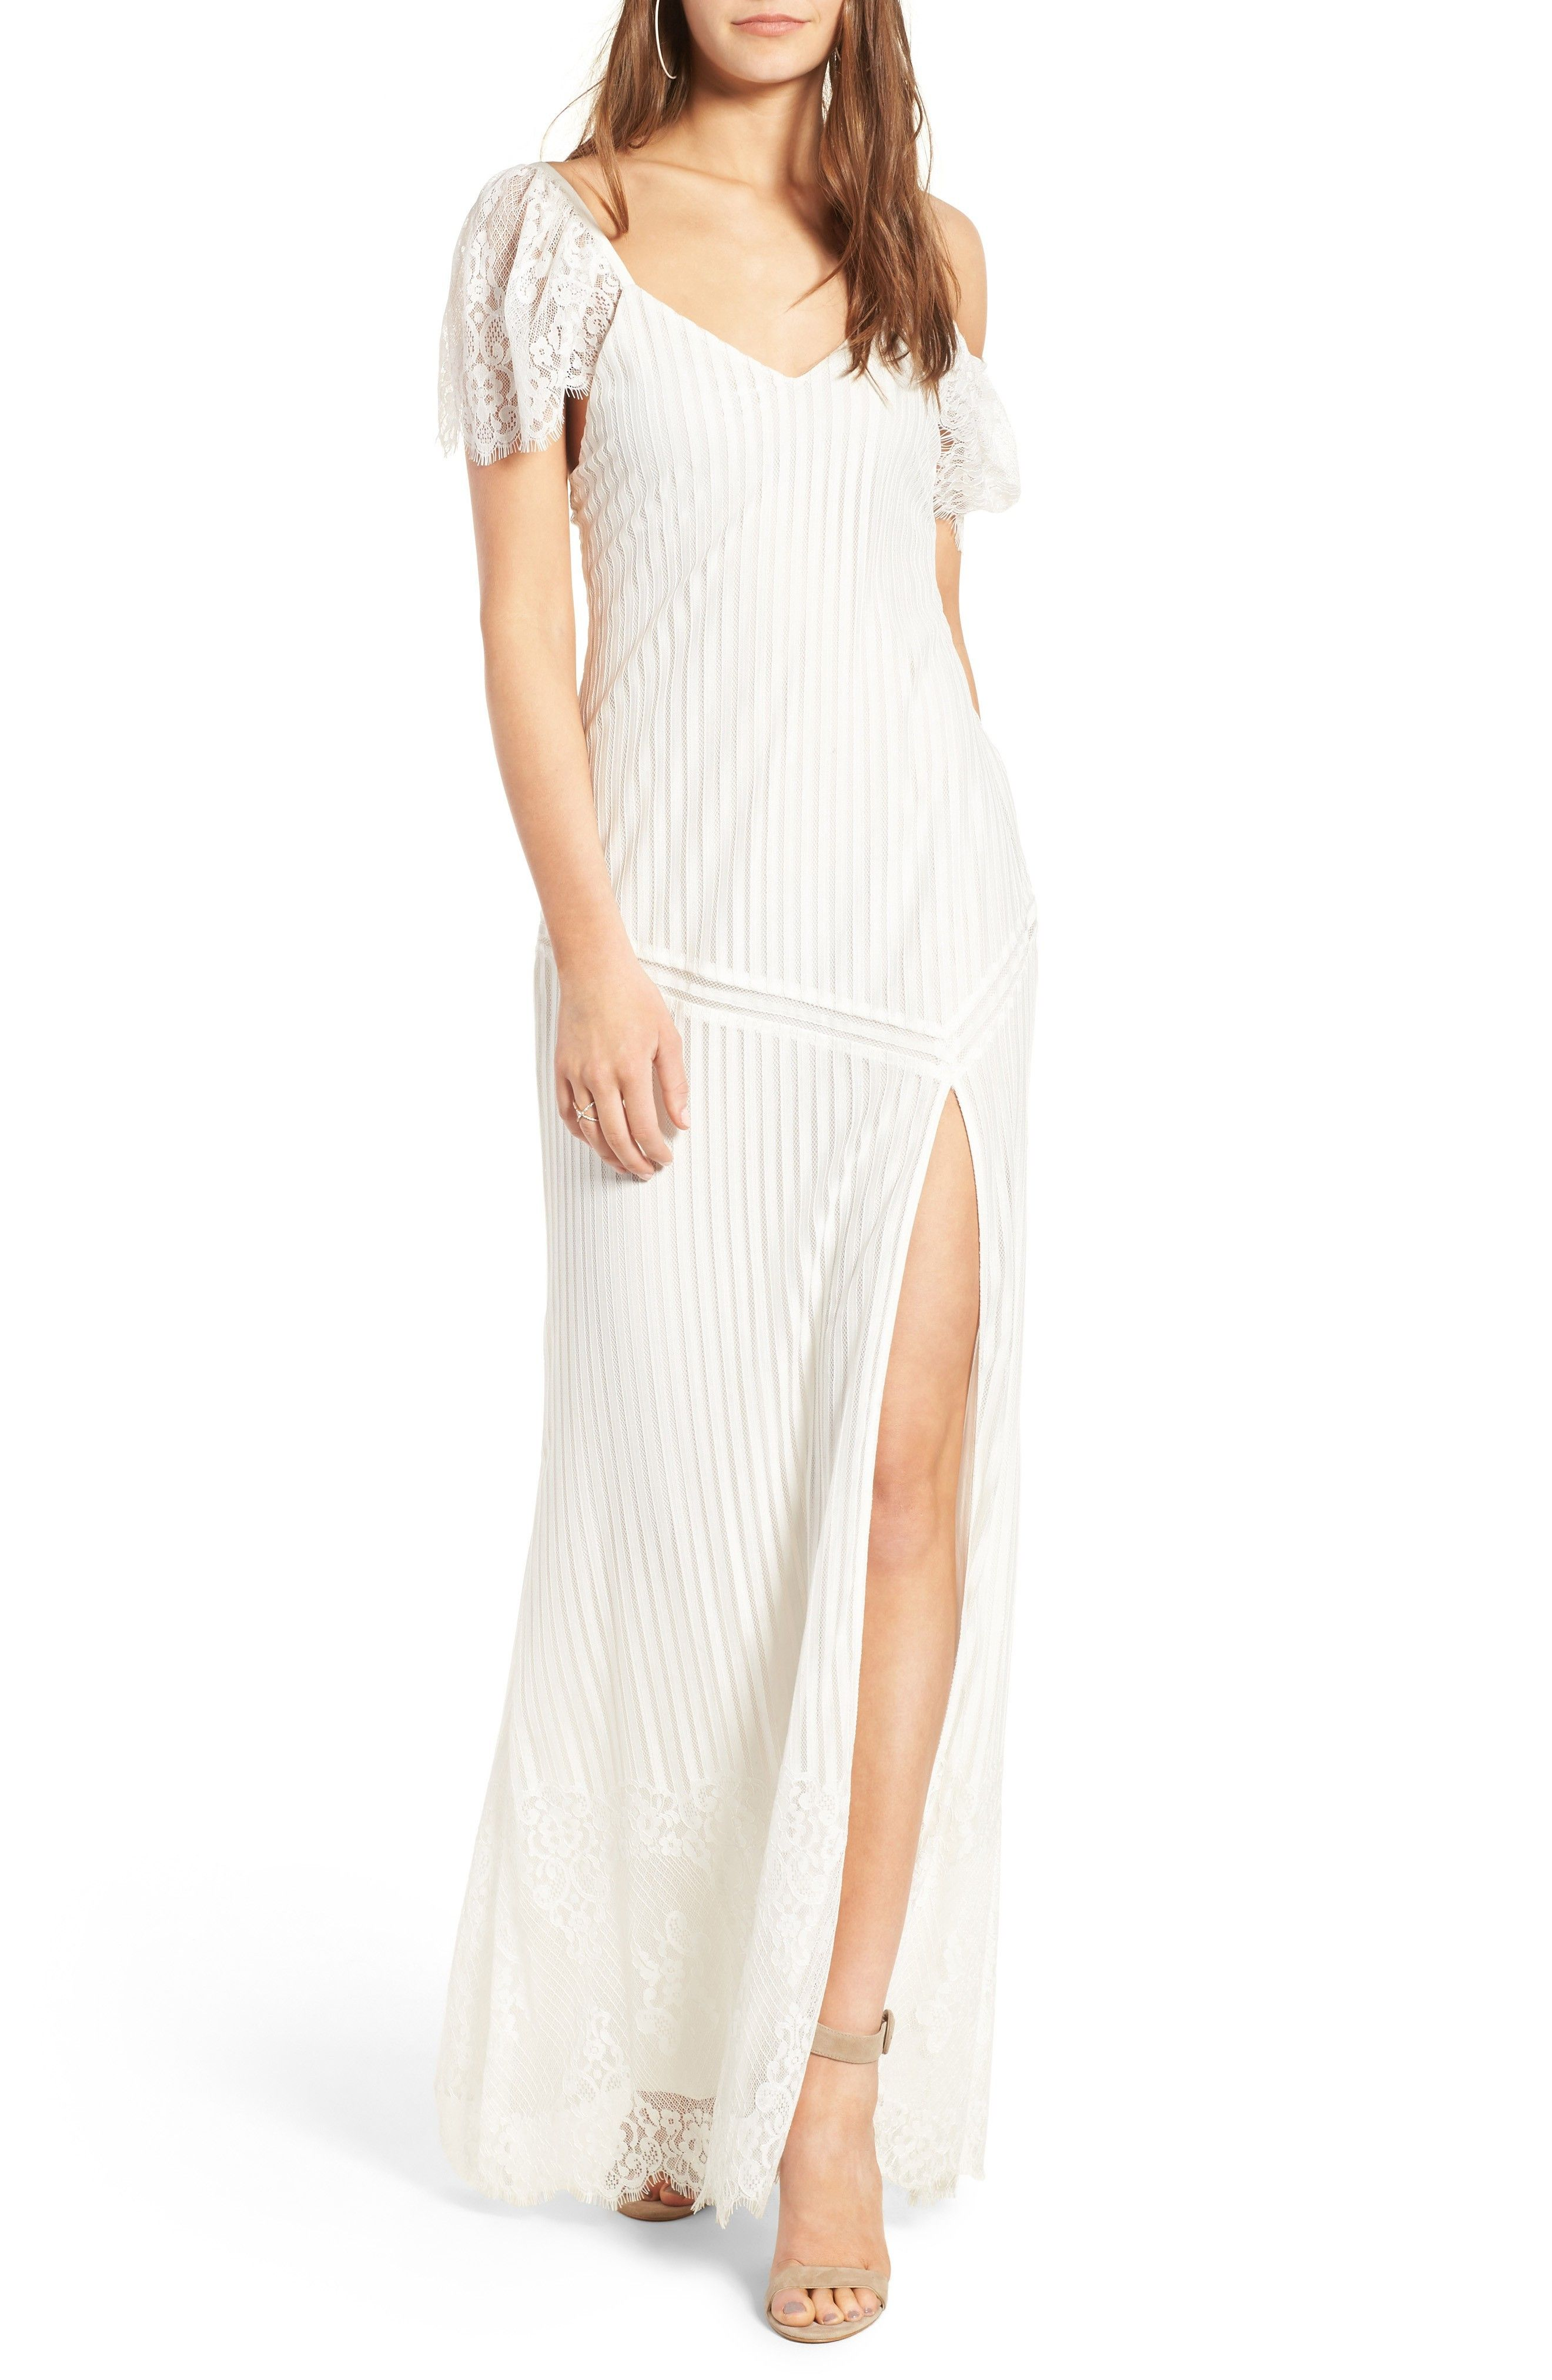 New STONE COLD FOX Fiori Backless Gown fashion online. [$750]?@shop hoodress<<